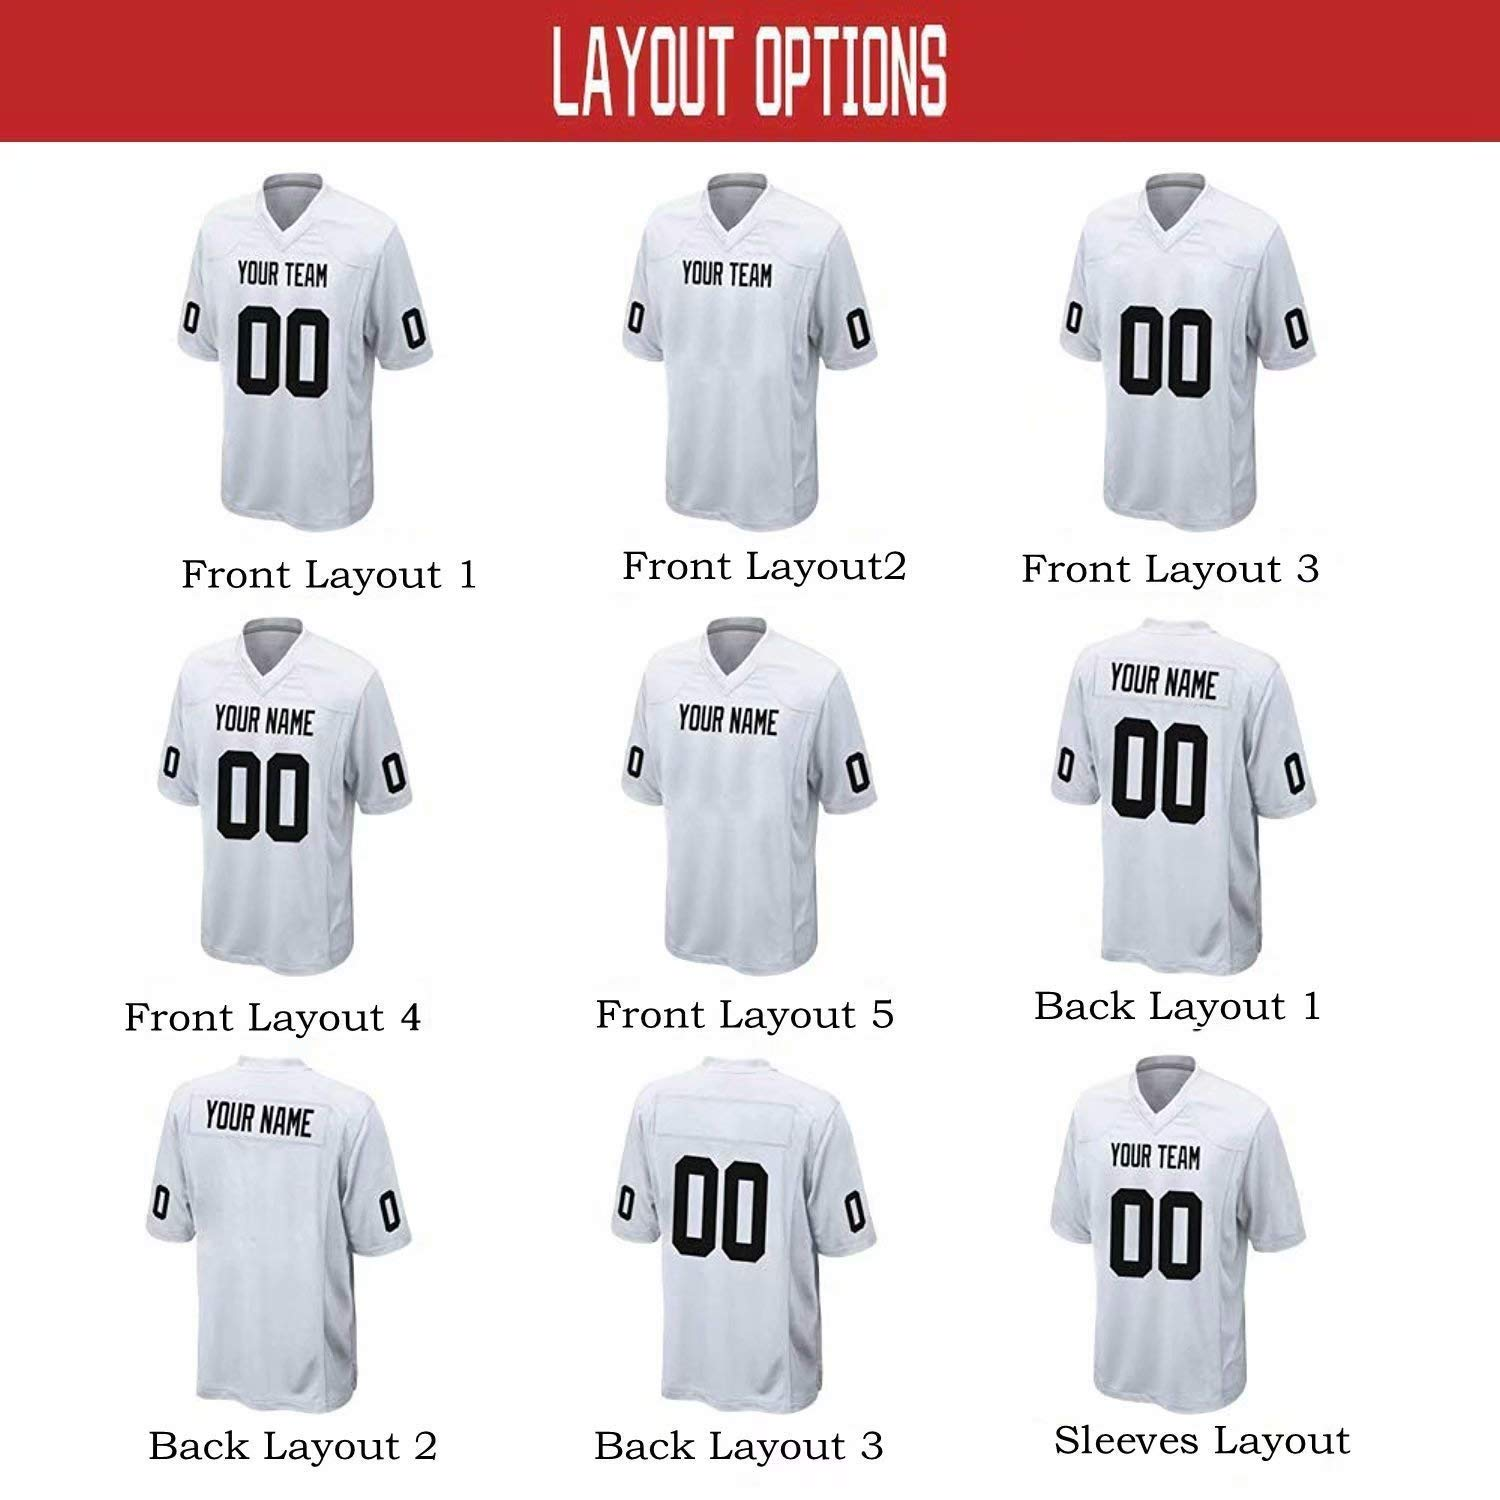 b372b2e9537f Men's Custom Football Jersey Custom Your Own/Team Mesh Jerseys Embroidered  Name Numbers American Football Black Jersey: Amazon.co.uk: Sports & Outdoors